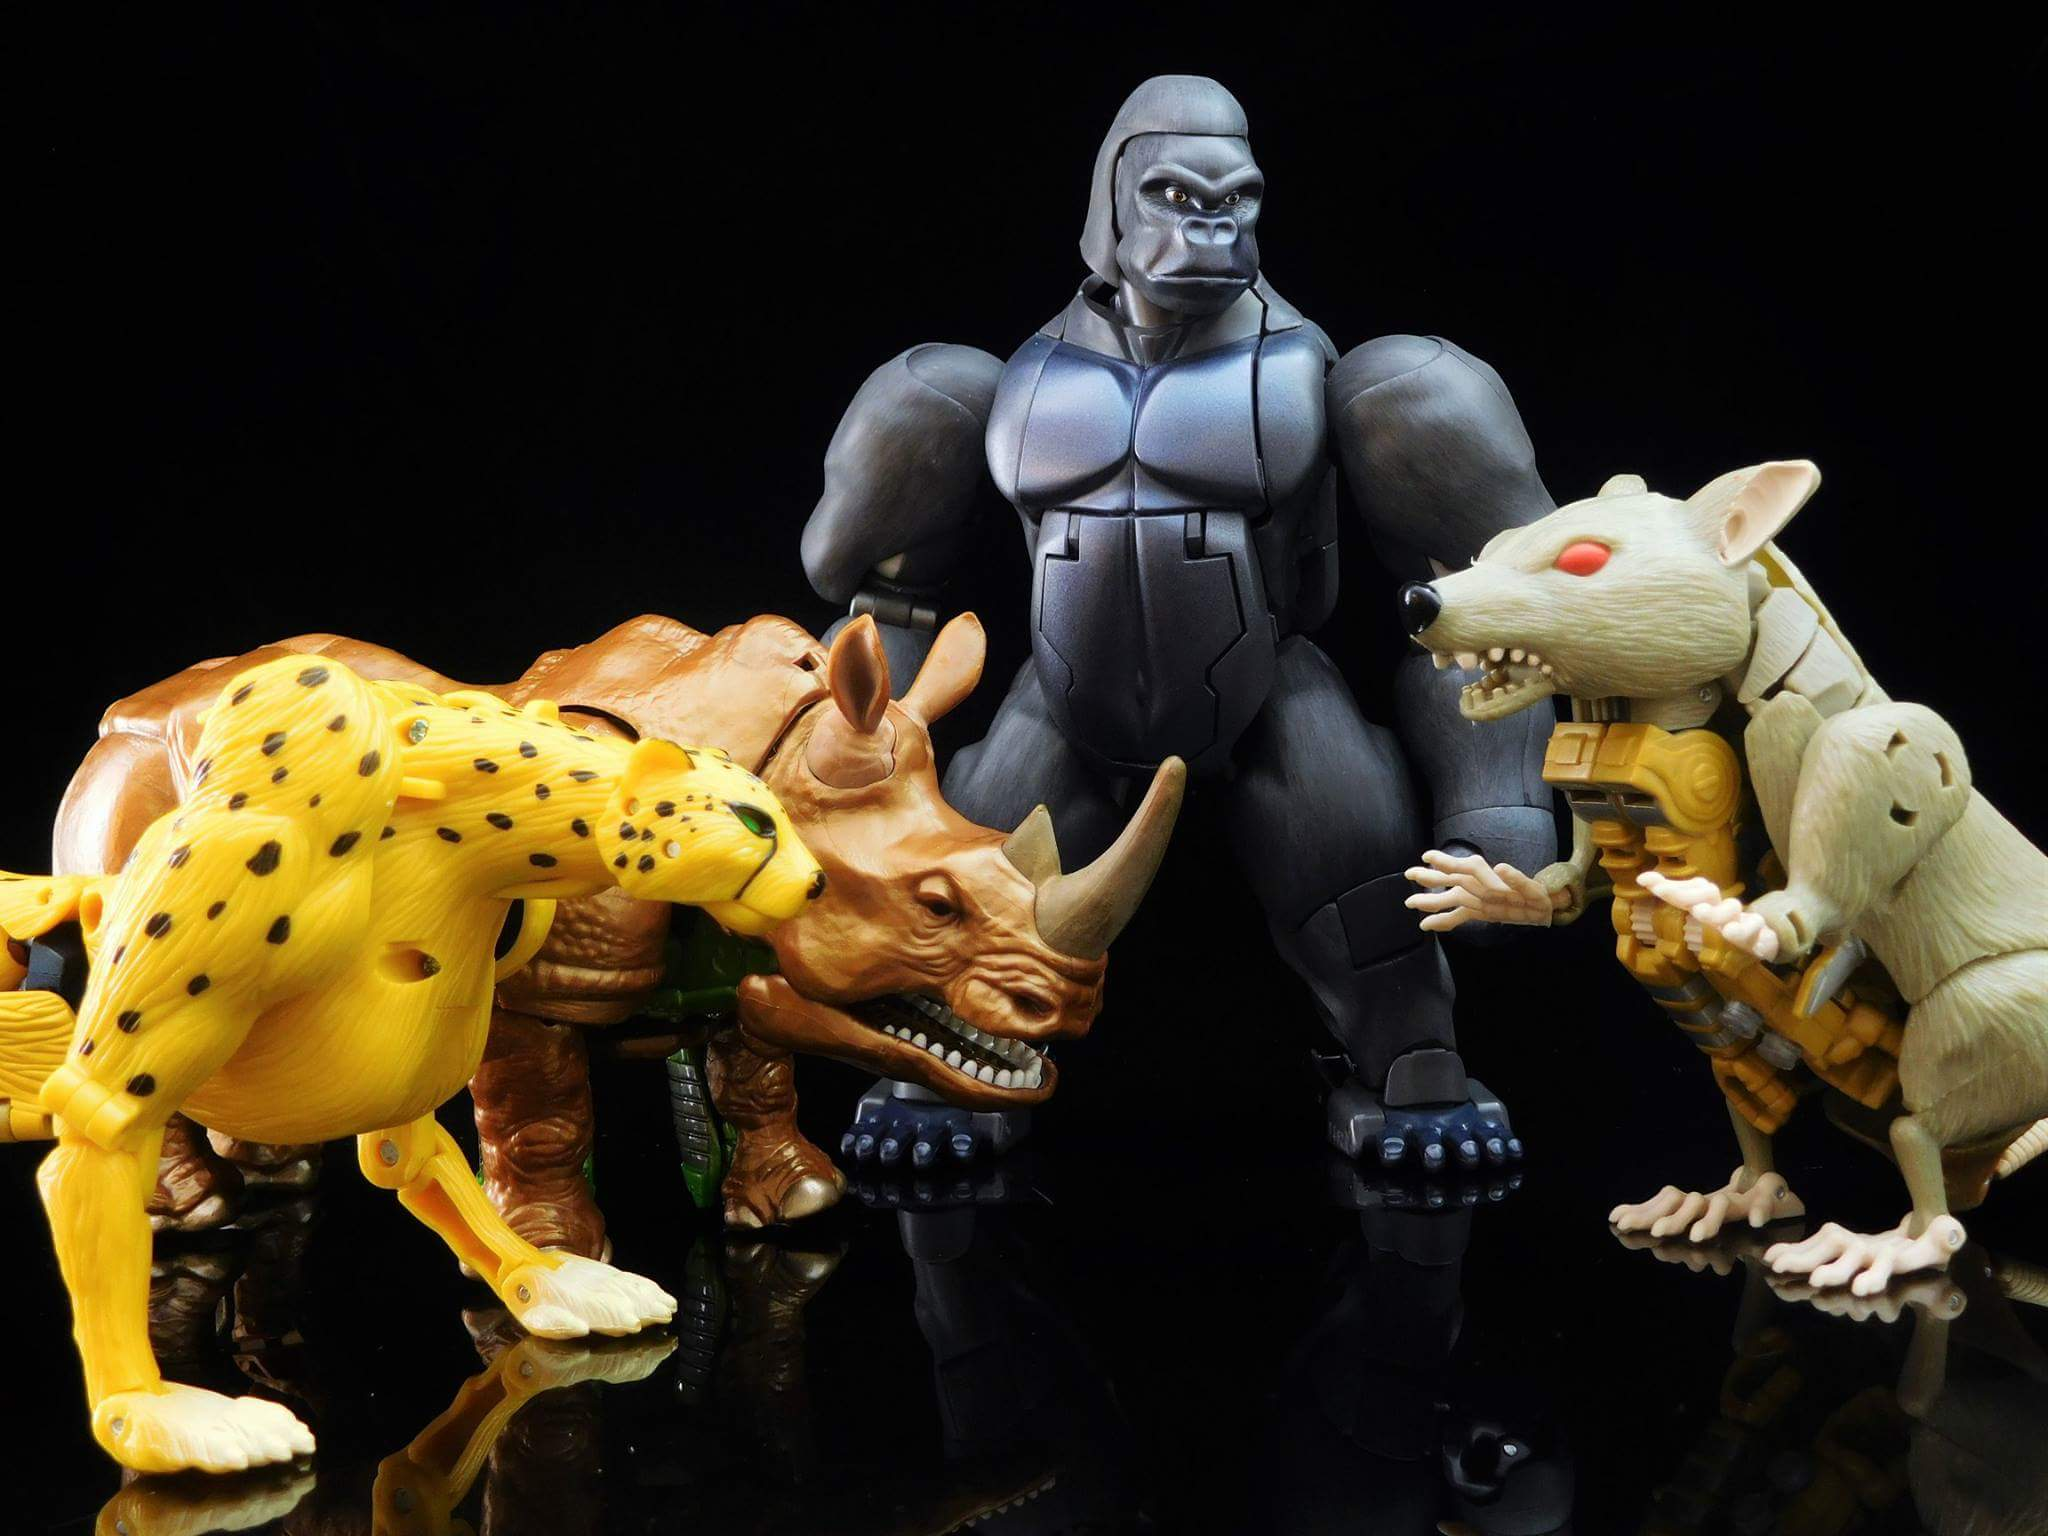 [Masterpiece] MP-32, MP-38 Optimus Primal et MP-38+ Burning Convoy (Beast Wars) - Page 3 EidcA7DV